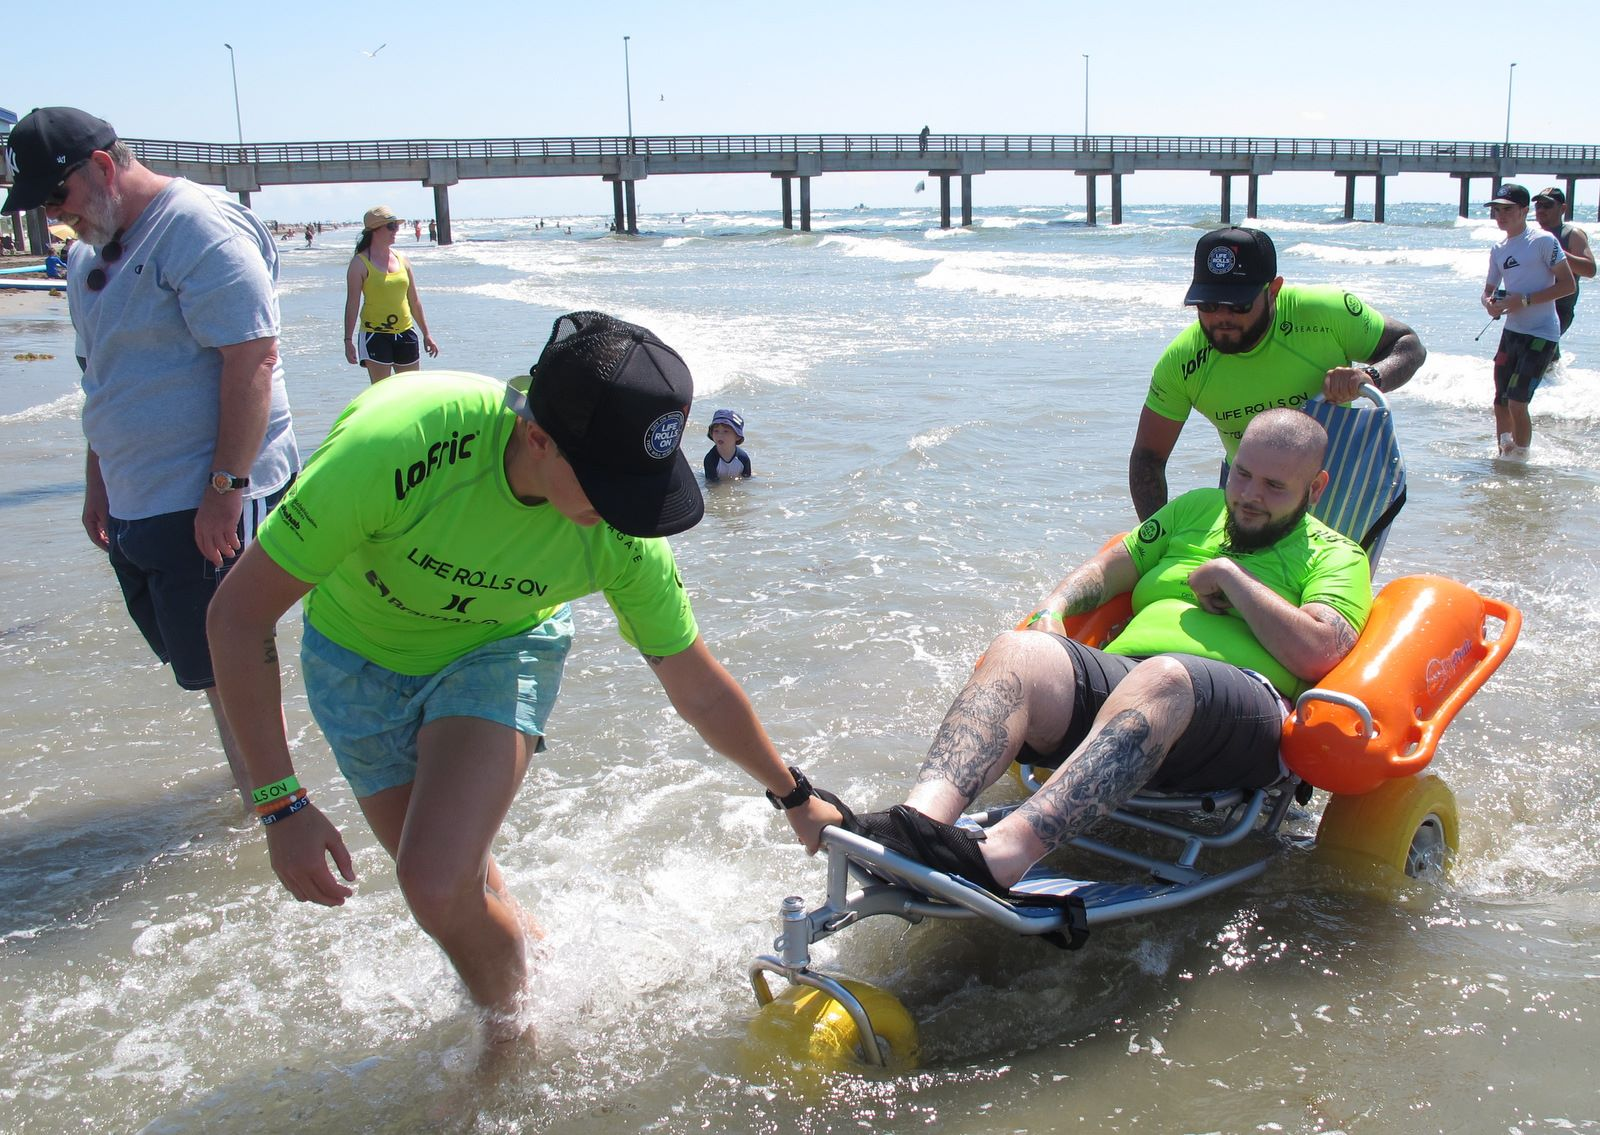 texas green team pulling chair out of water gayla kolle goff.jpg